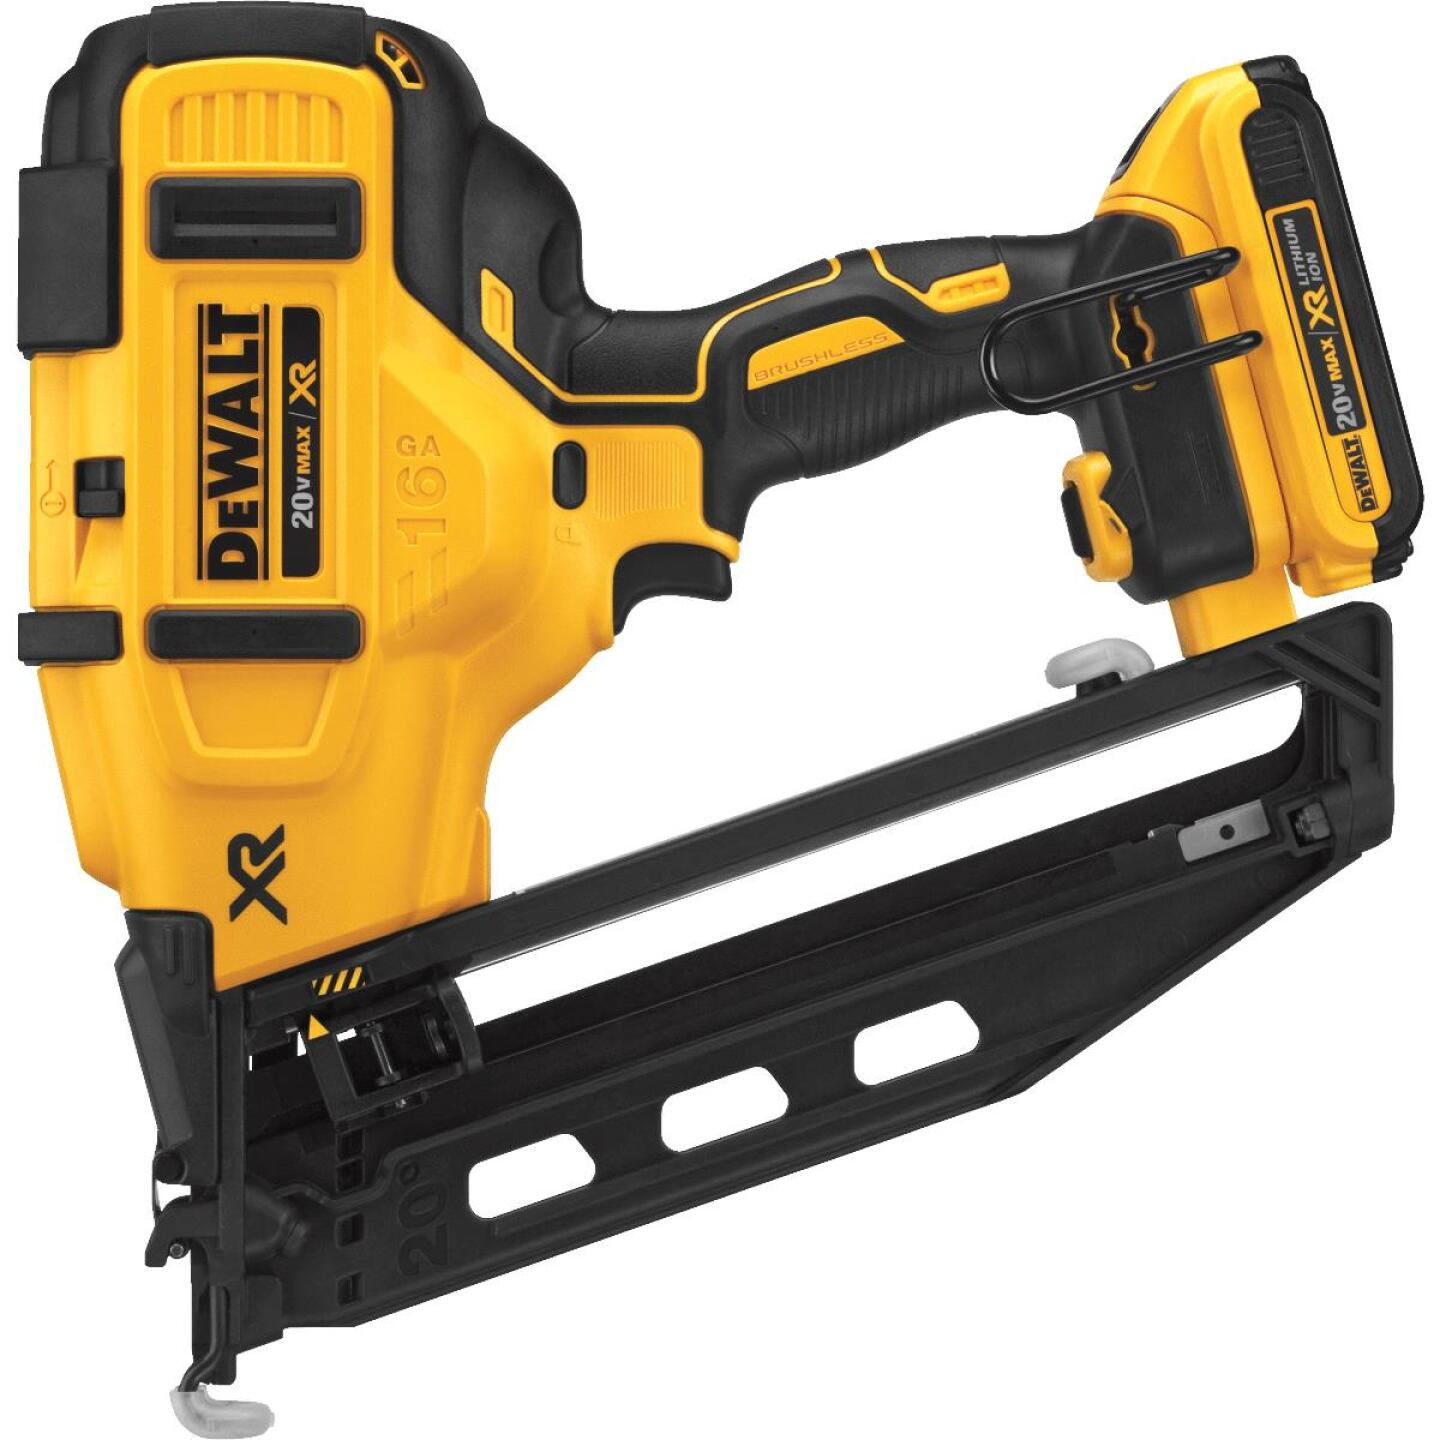 DeWalt 20 Volt MAX XR Lithium-Ion 16-Gauge 2-1/2 In. Angled Cordless Finish Nailer Kit Image 4